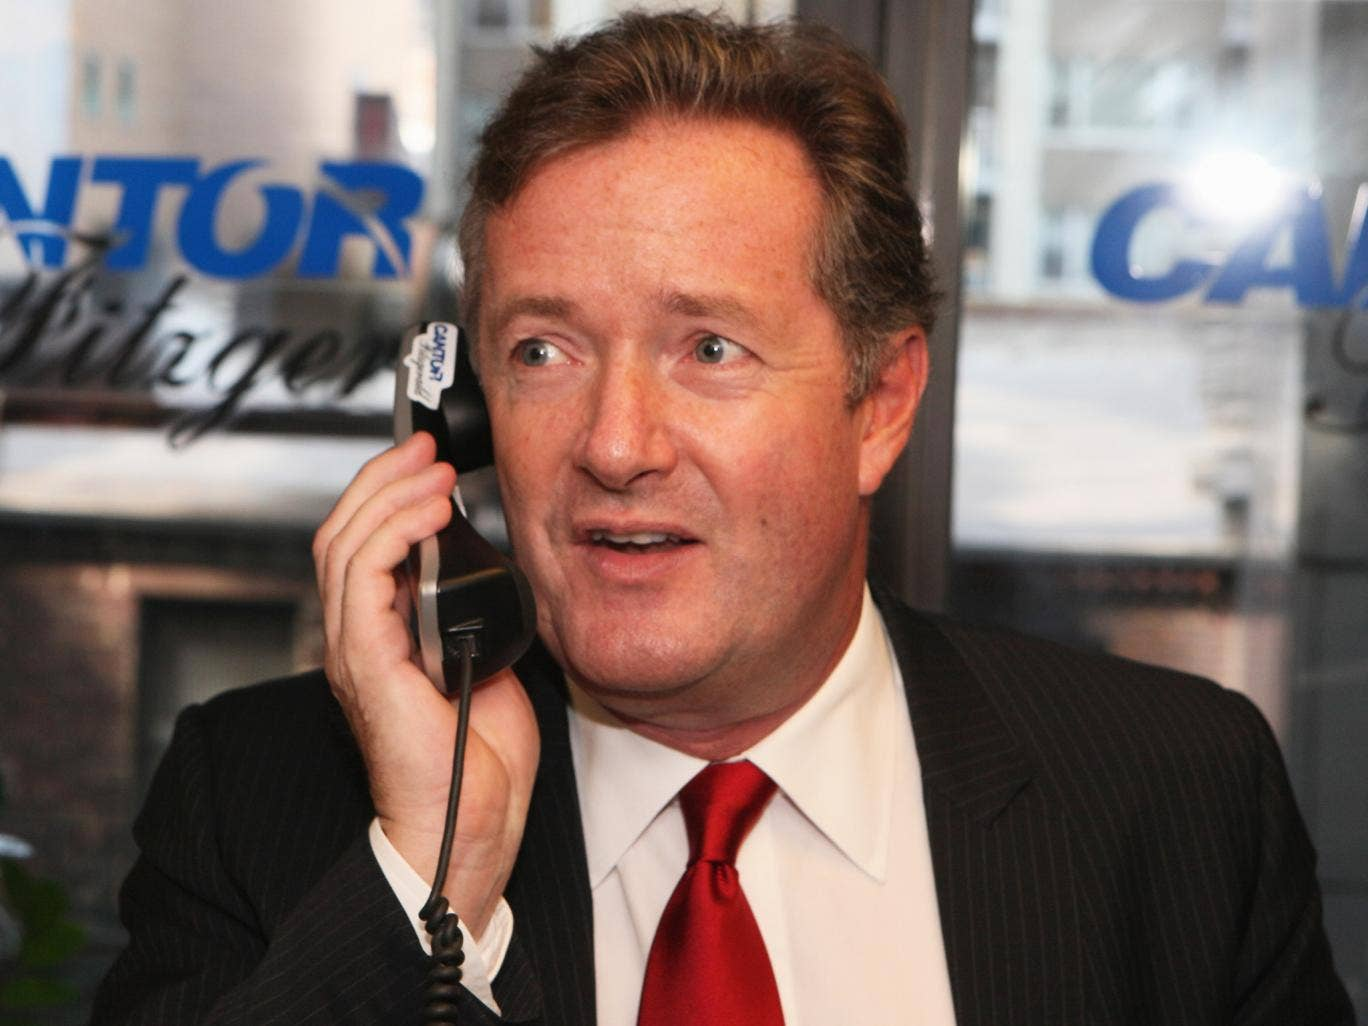 piers morgan - photo #12